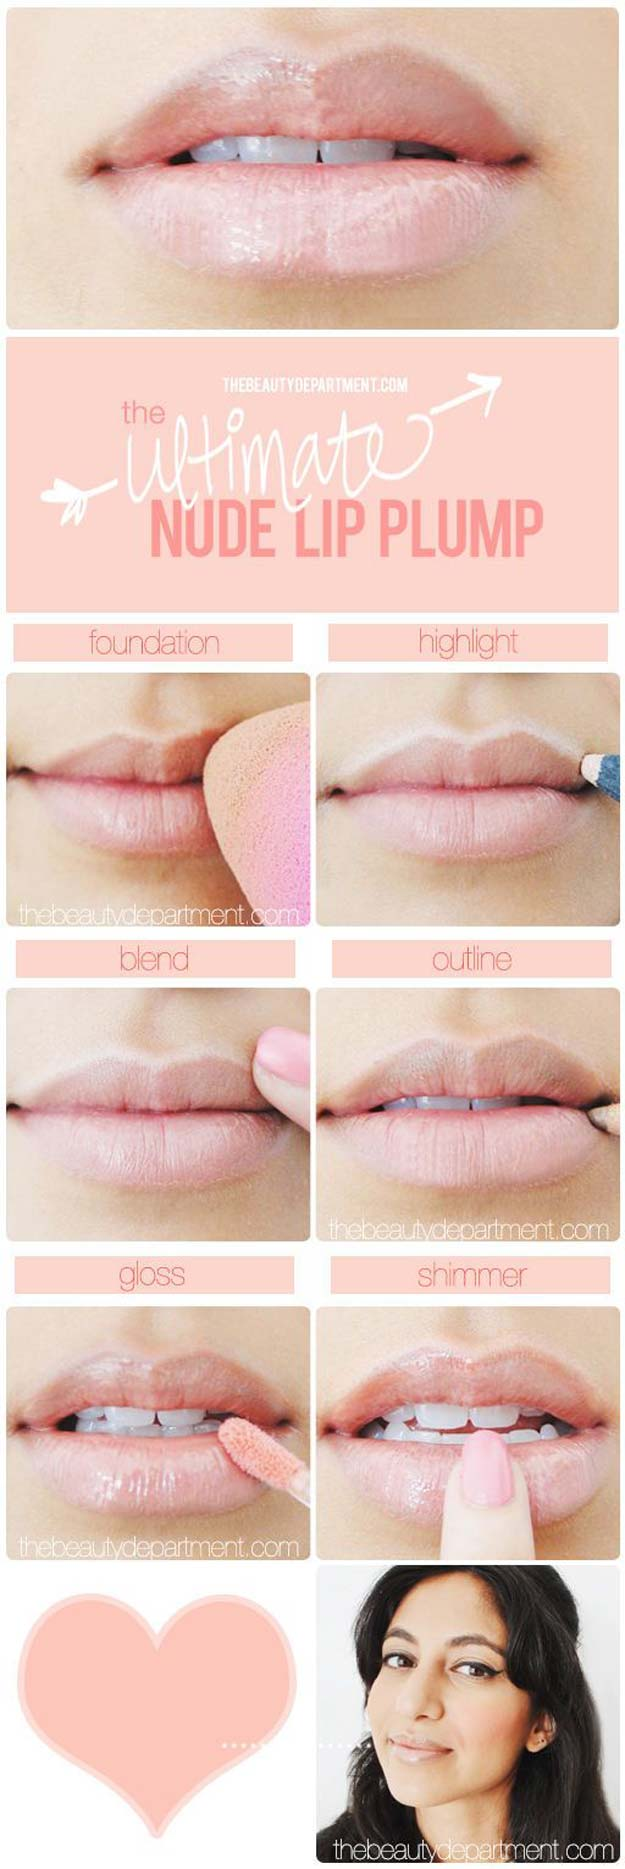 Lipstick Tutorials - Best Step by Step Makeup Tutorial How To - The Uptown Lip - Easy and Quick Ways to Apply Lipstick and Awesome Beauty Ideas - Cool Ideas for Teen Makeup for School, Party and Special Occasion - Makeup Tutorials for Beginners - Lip Liner Tips and Tricks to Add Volume, DIY Lip Techniques for Fuller Lips - DIY Projects and Crafts for Teens